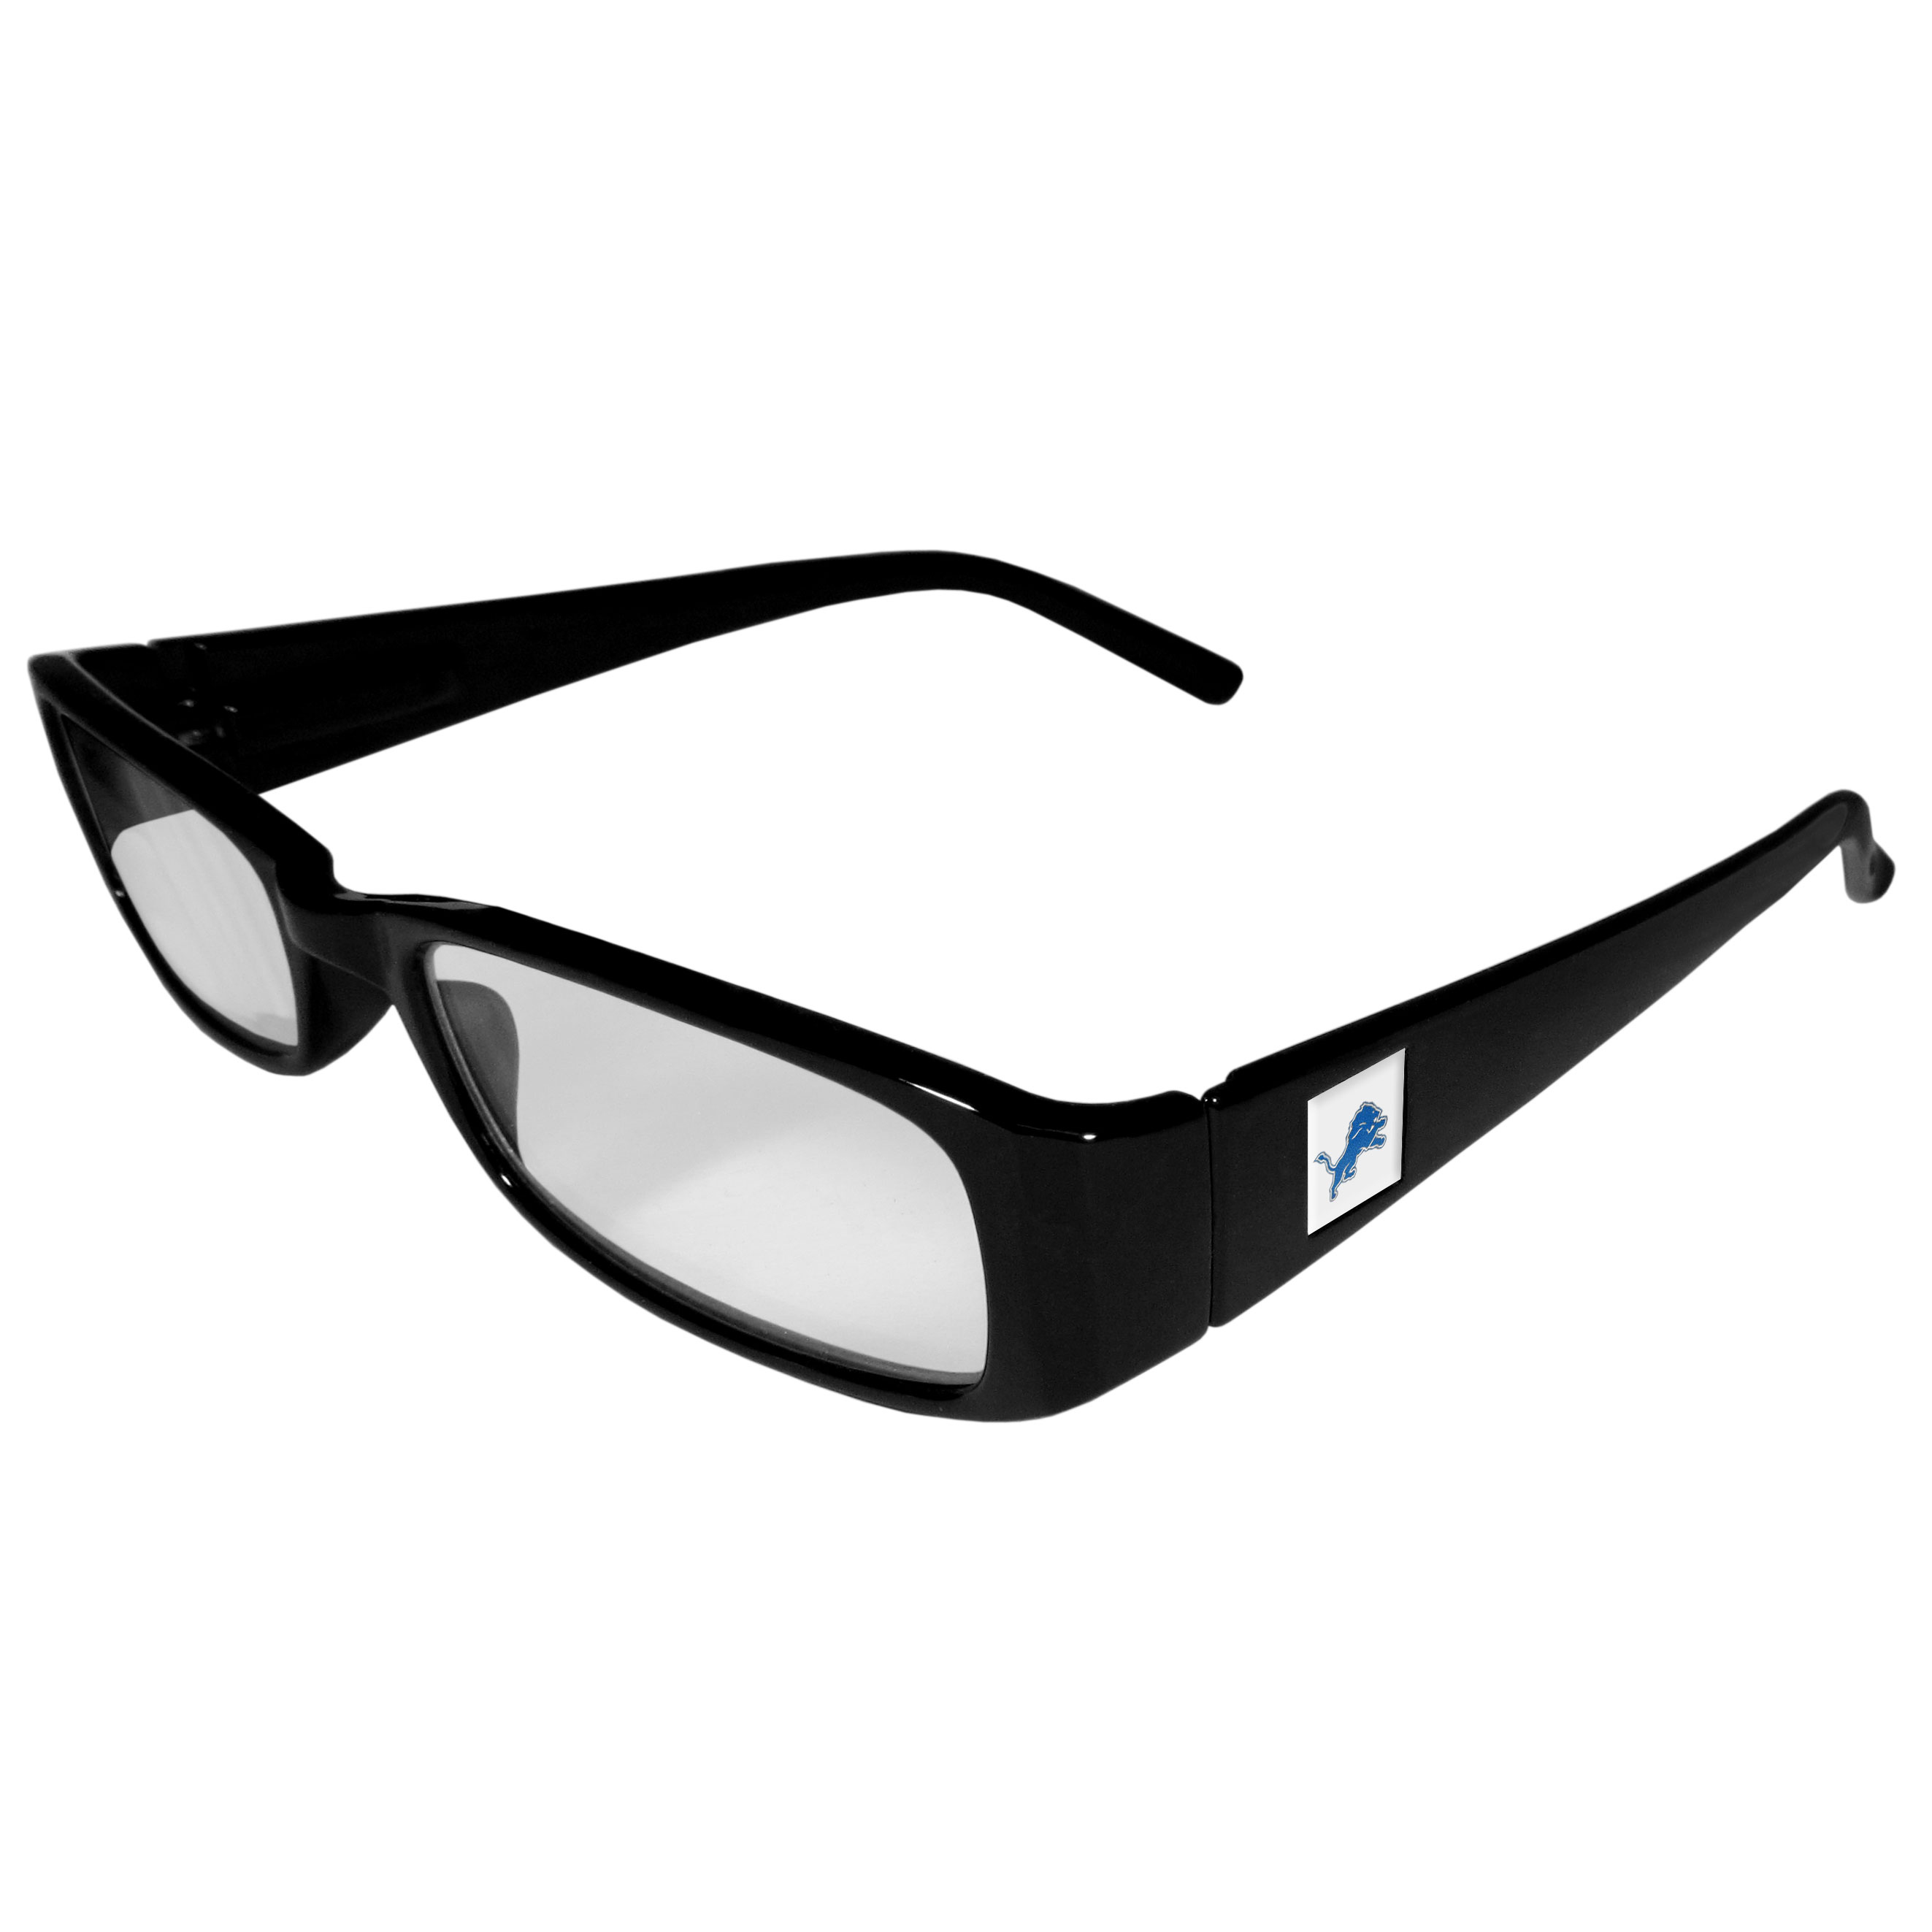 Detroit Lions Black Reading Glasses +1.25 - Our Detroit Lions reading glasses are 5.25 inches wide and feature the team logo on each arm. Magnification Power 1.25